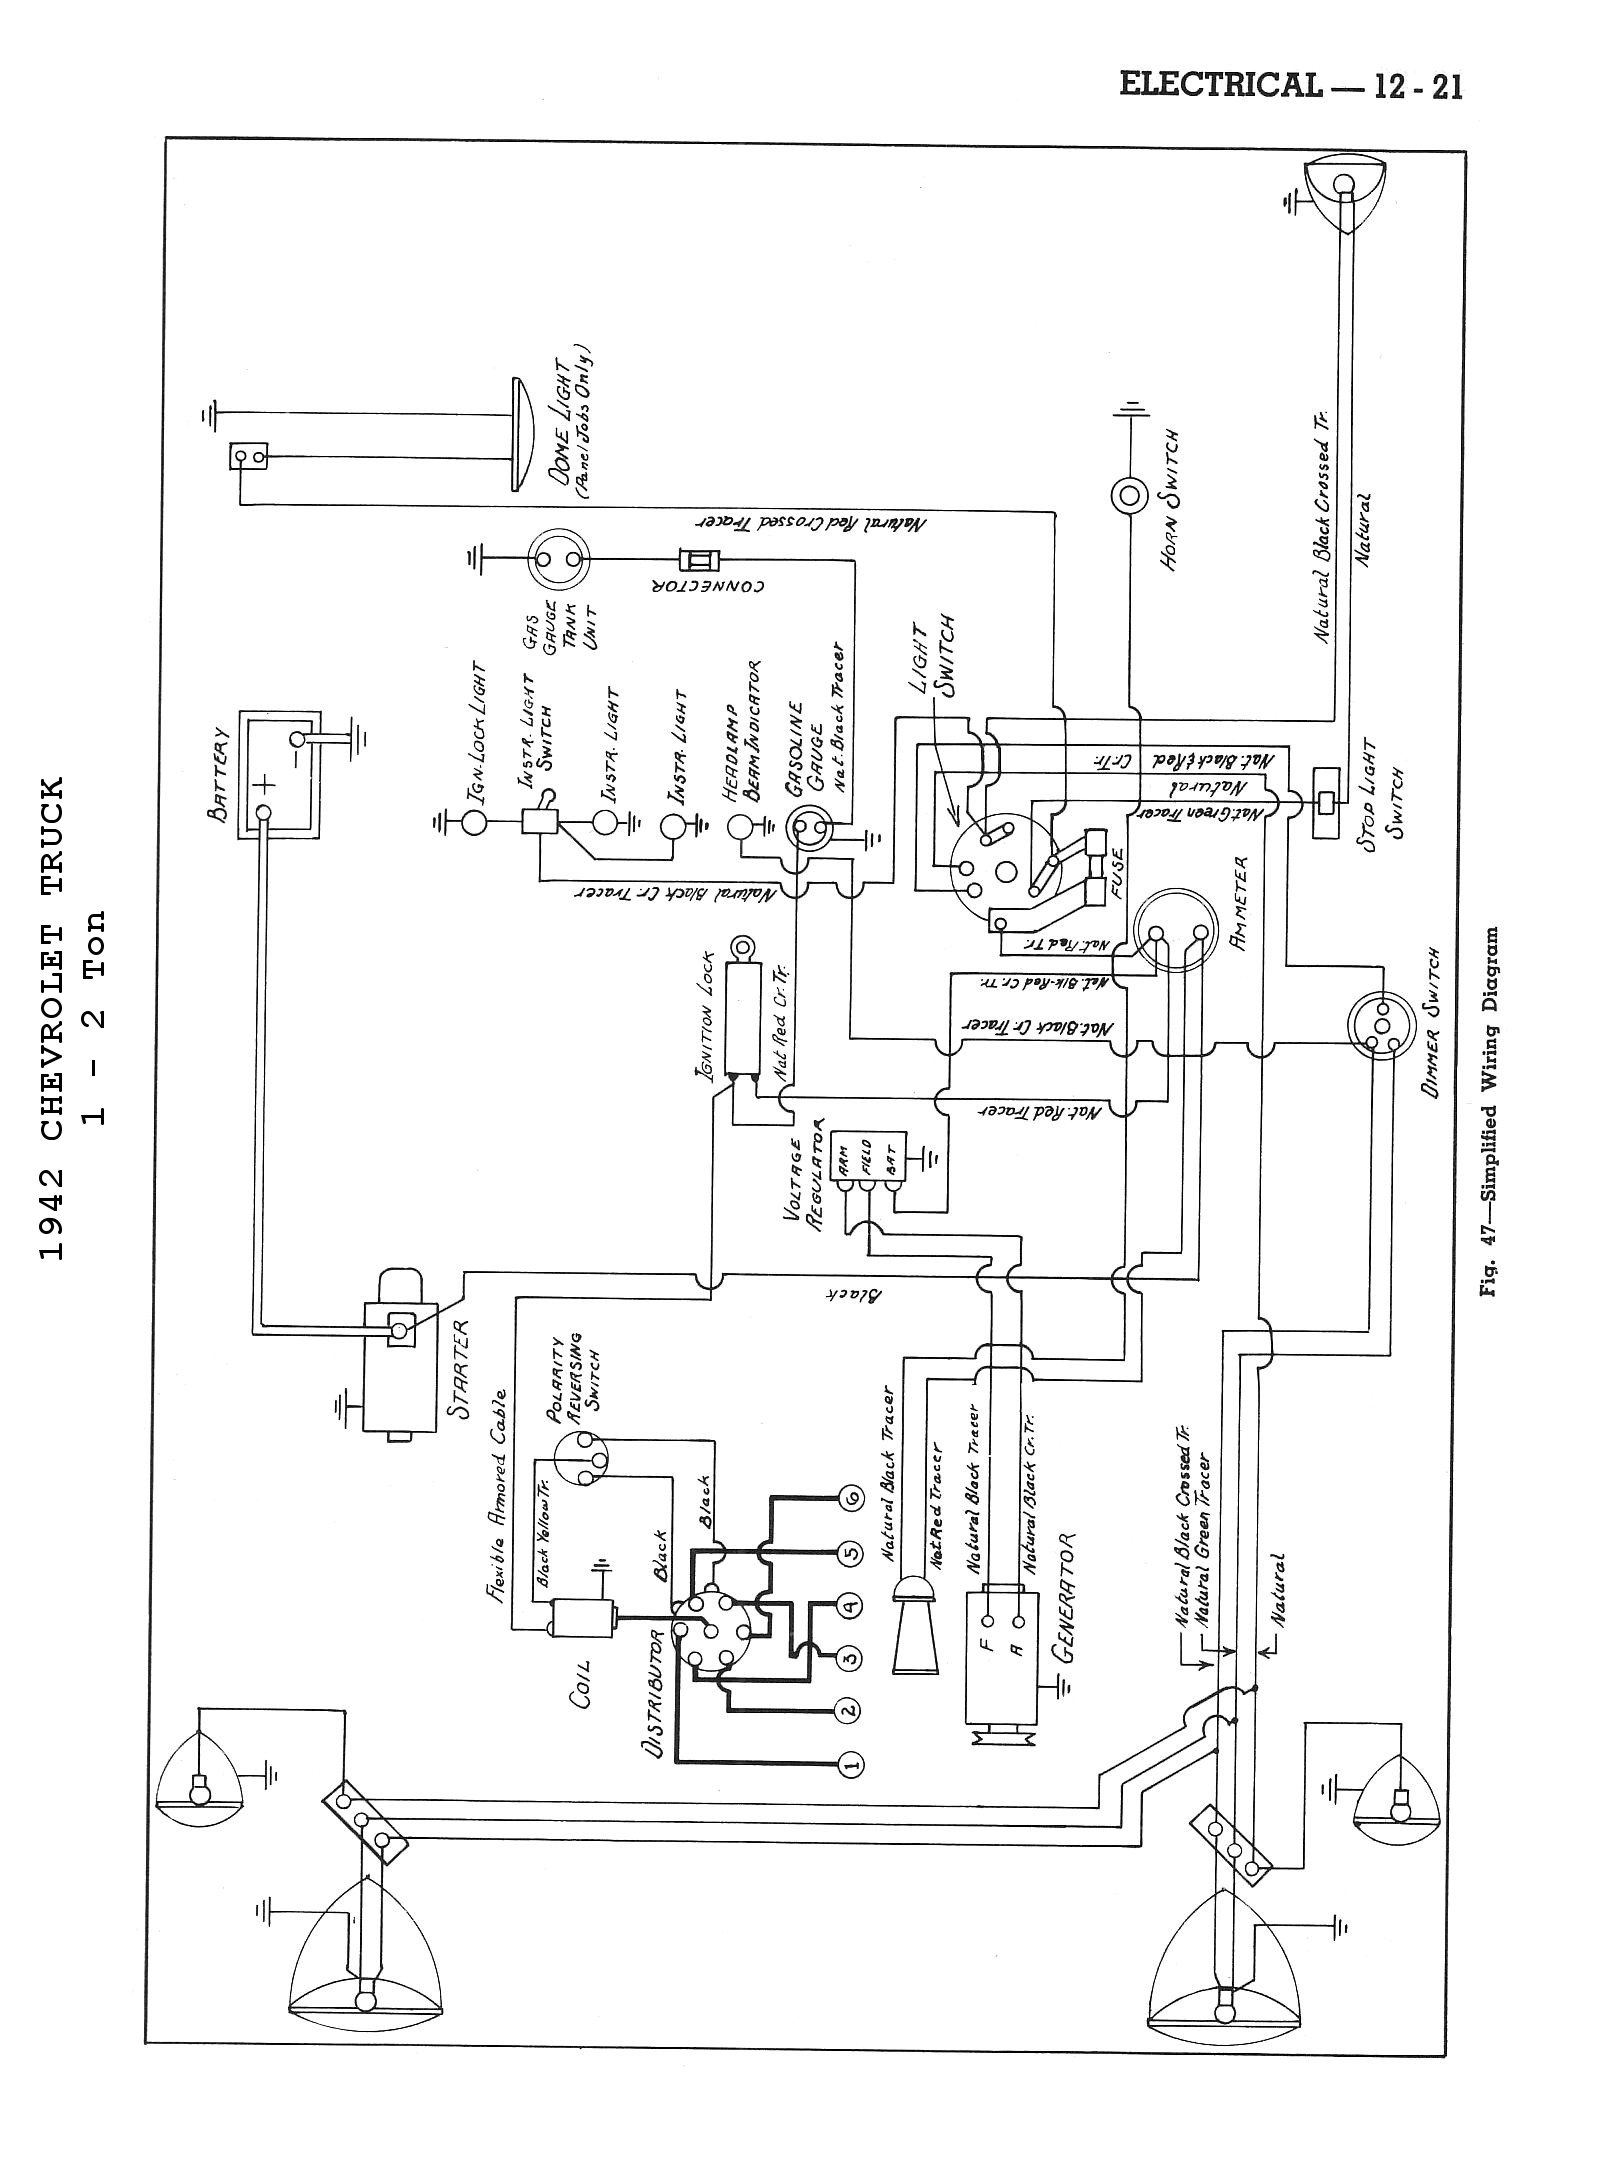 hight resolution of wiring diagram 1953 plymouth 13 11 spikeballclubkoeln de u20221947 plymouth wiring diagram wiring schematic diagram